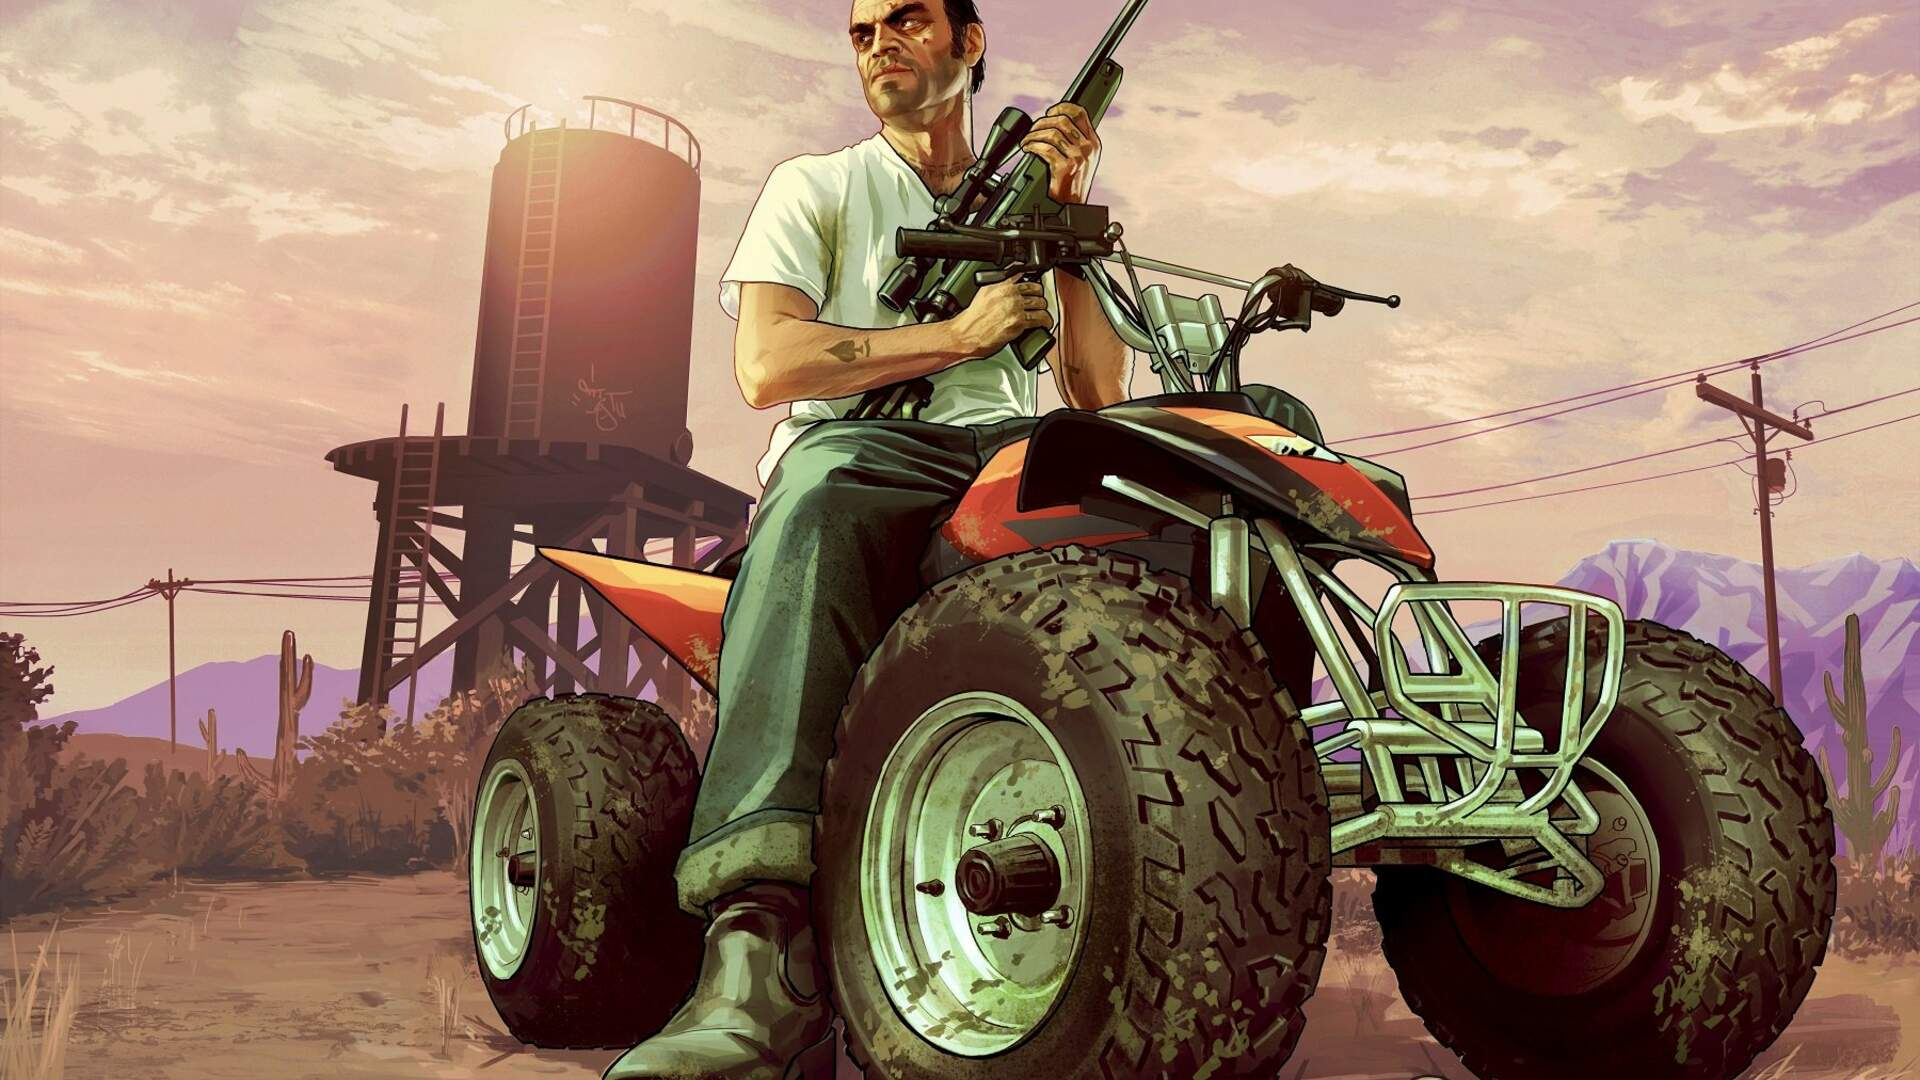 Grand Theft Auto 5 Is Coming to the PS5 in 2021